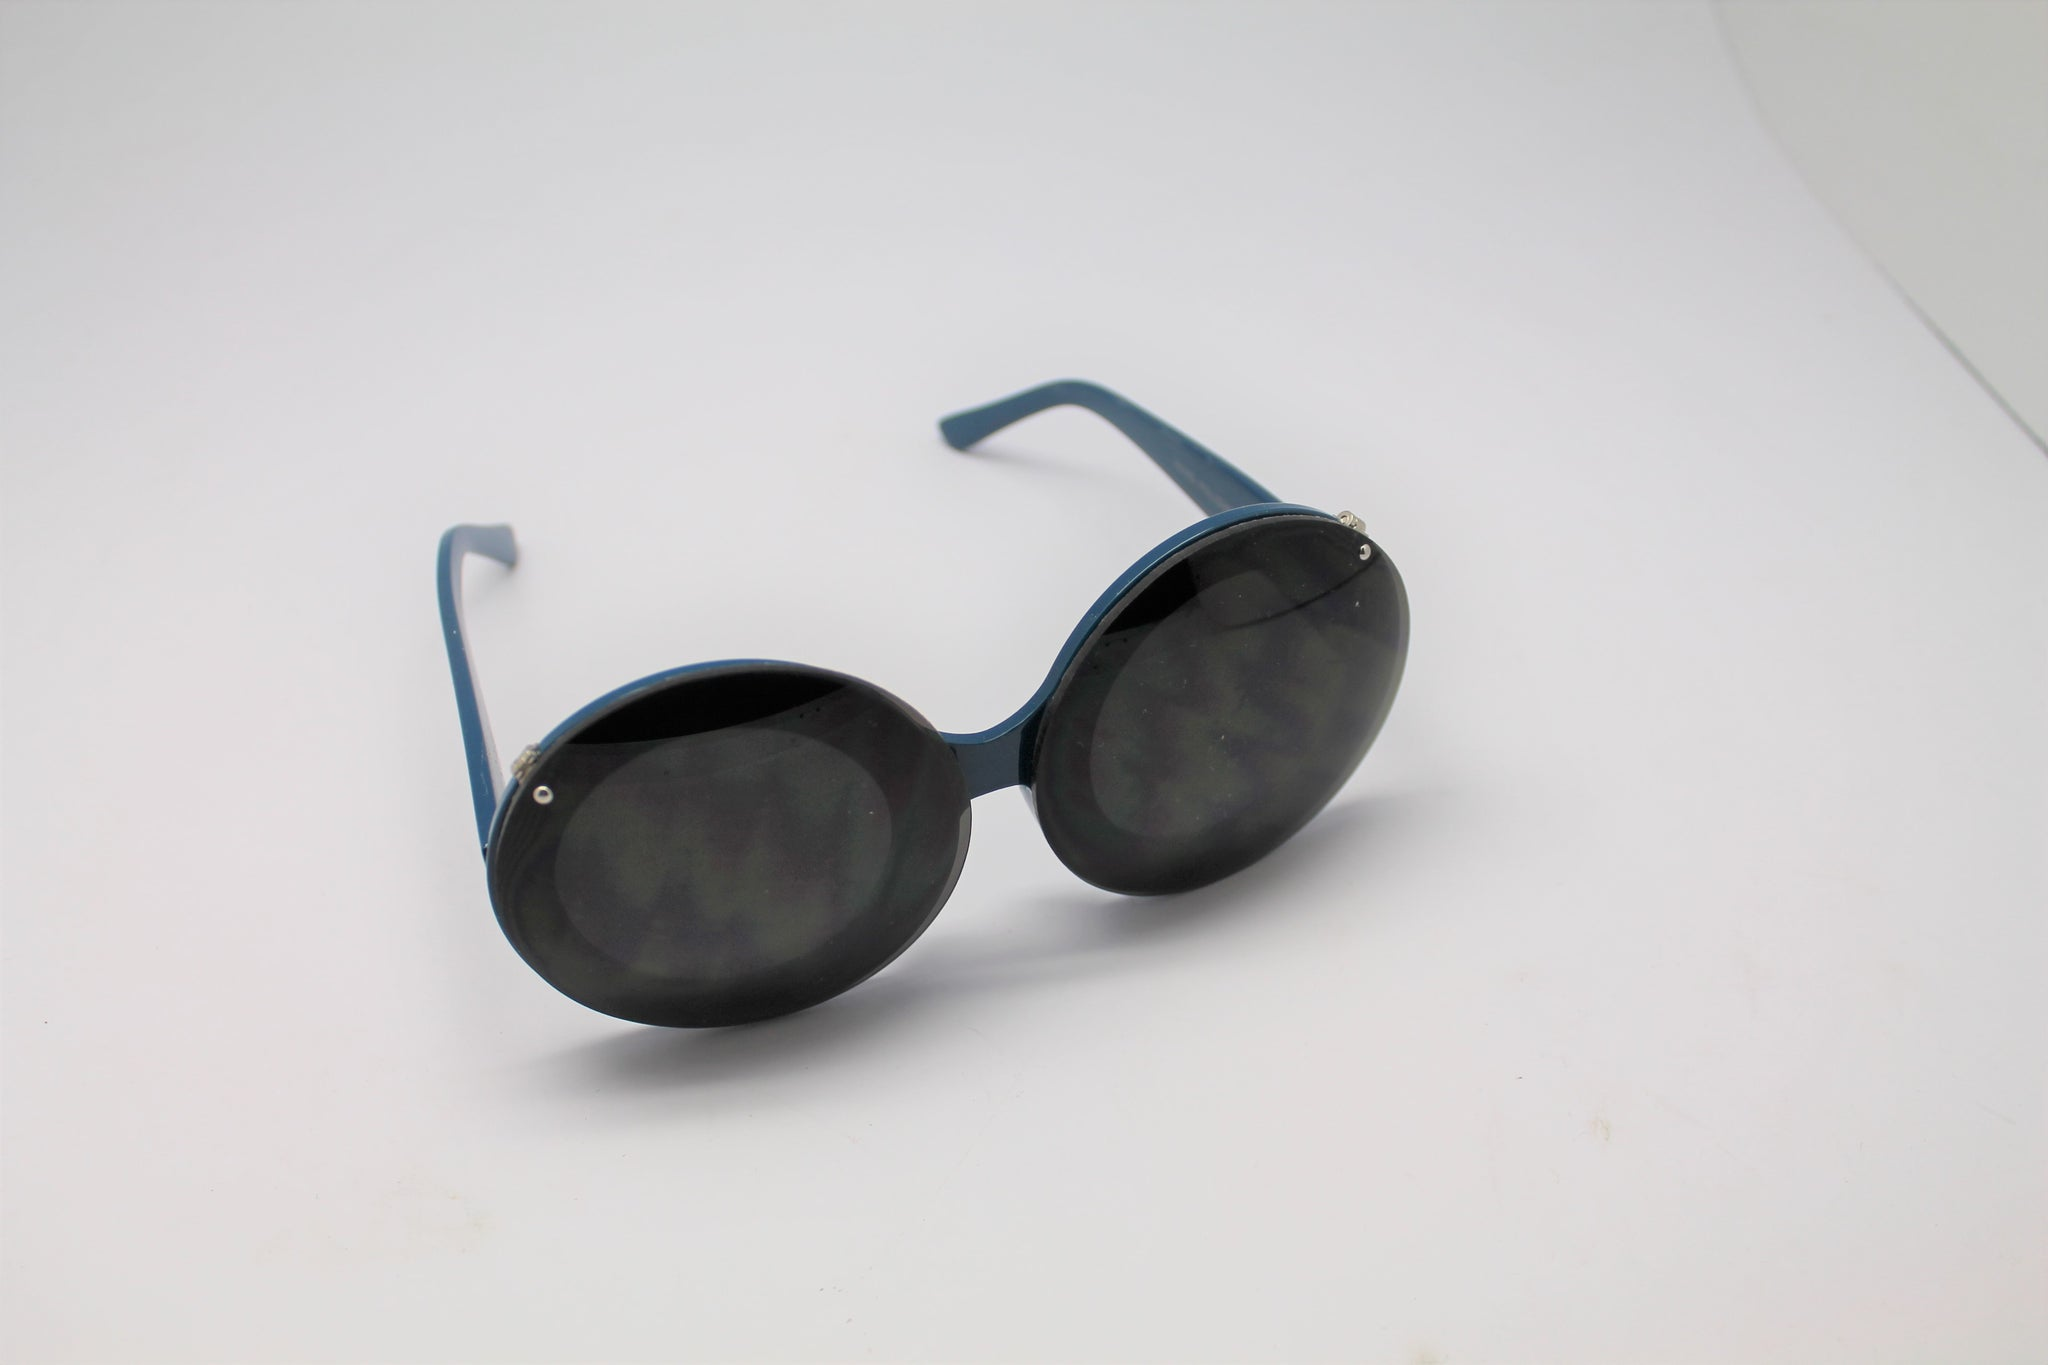 ca3ddf01e37 ... Clear lenses · Lady gaga Mickey Mouse Flip Retro Paparazzi Sunglasses  Blue Frames